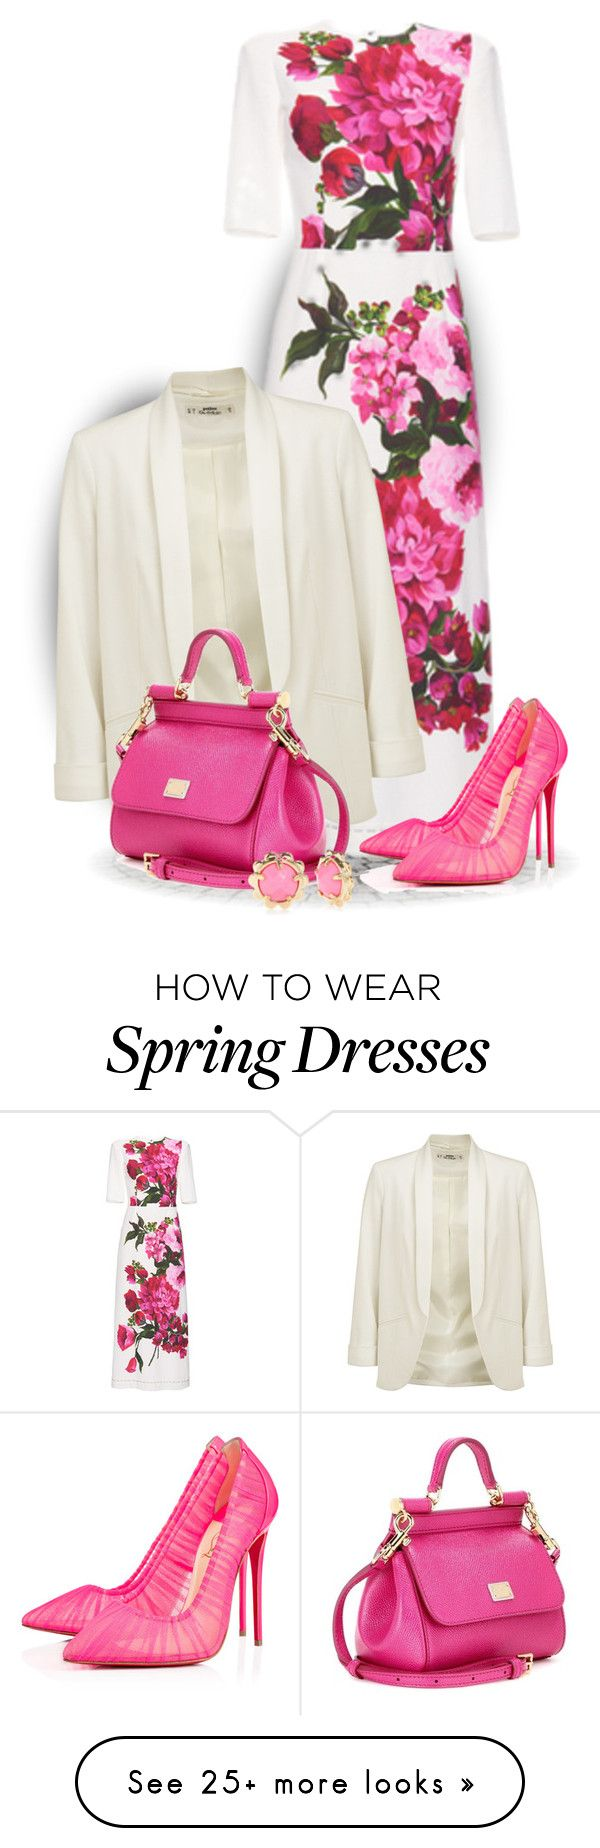 """Floral Dress For Spring"" by bliznec on Polyvore featuring Dolce&Gabbana, Miss Selfridge, Christian Louboutin and Kate Spade"